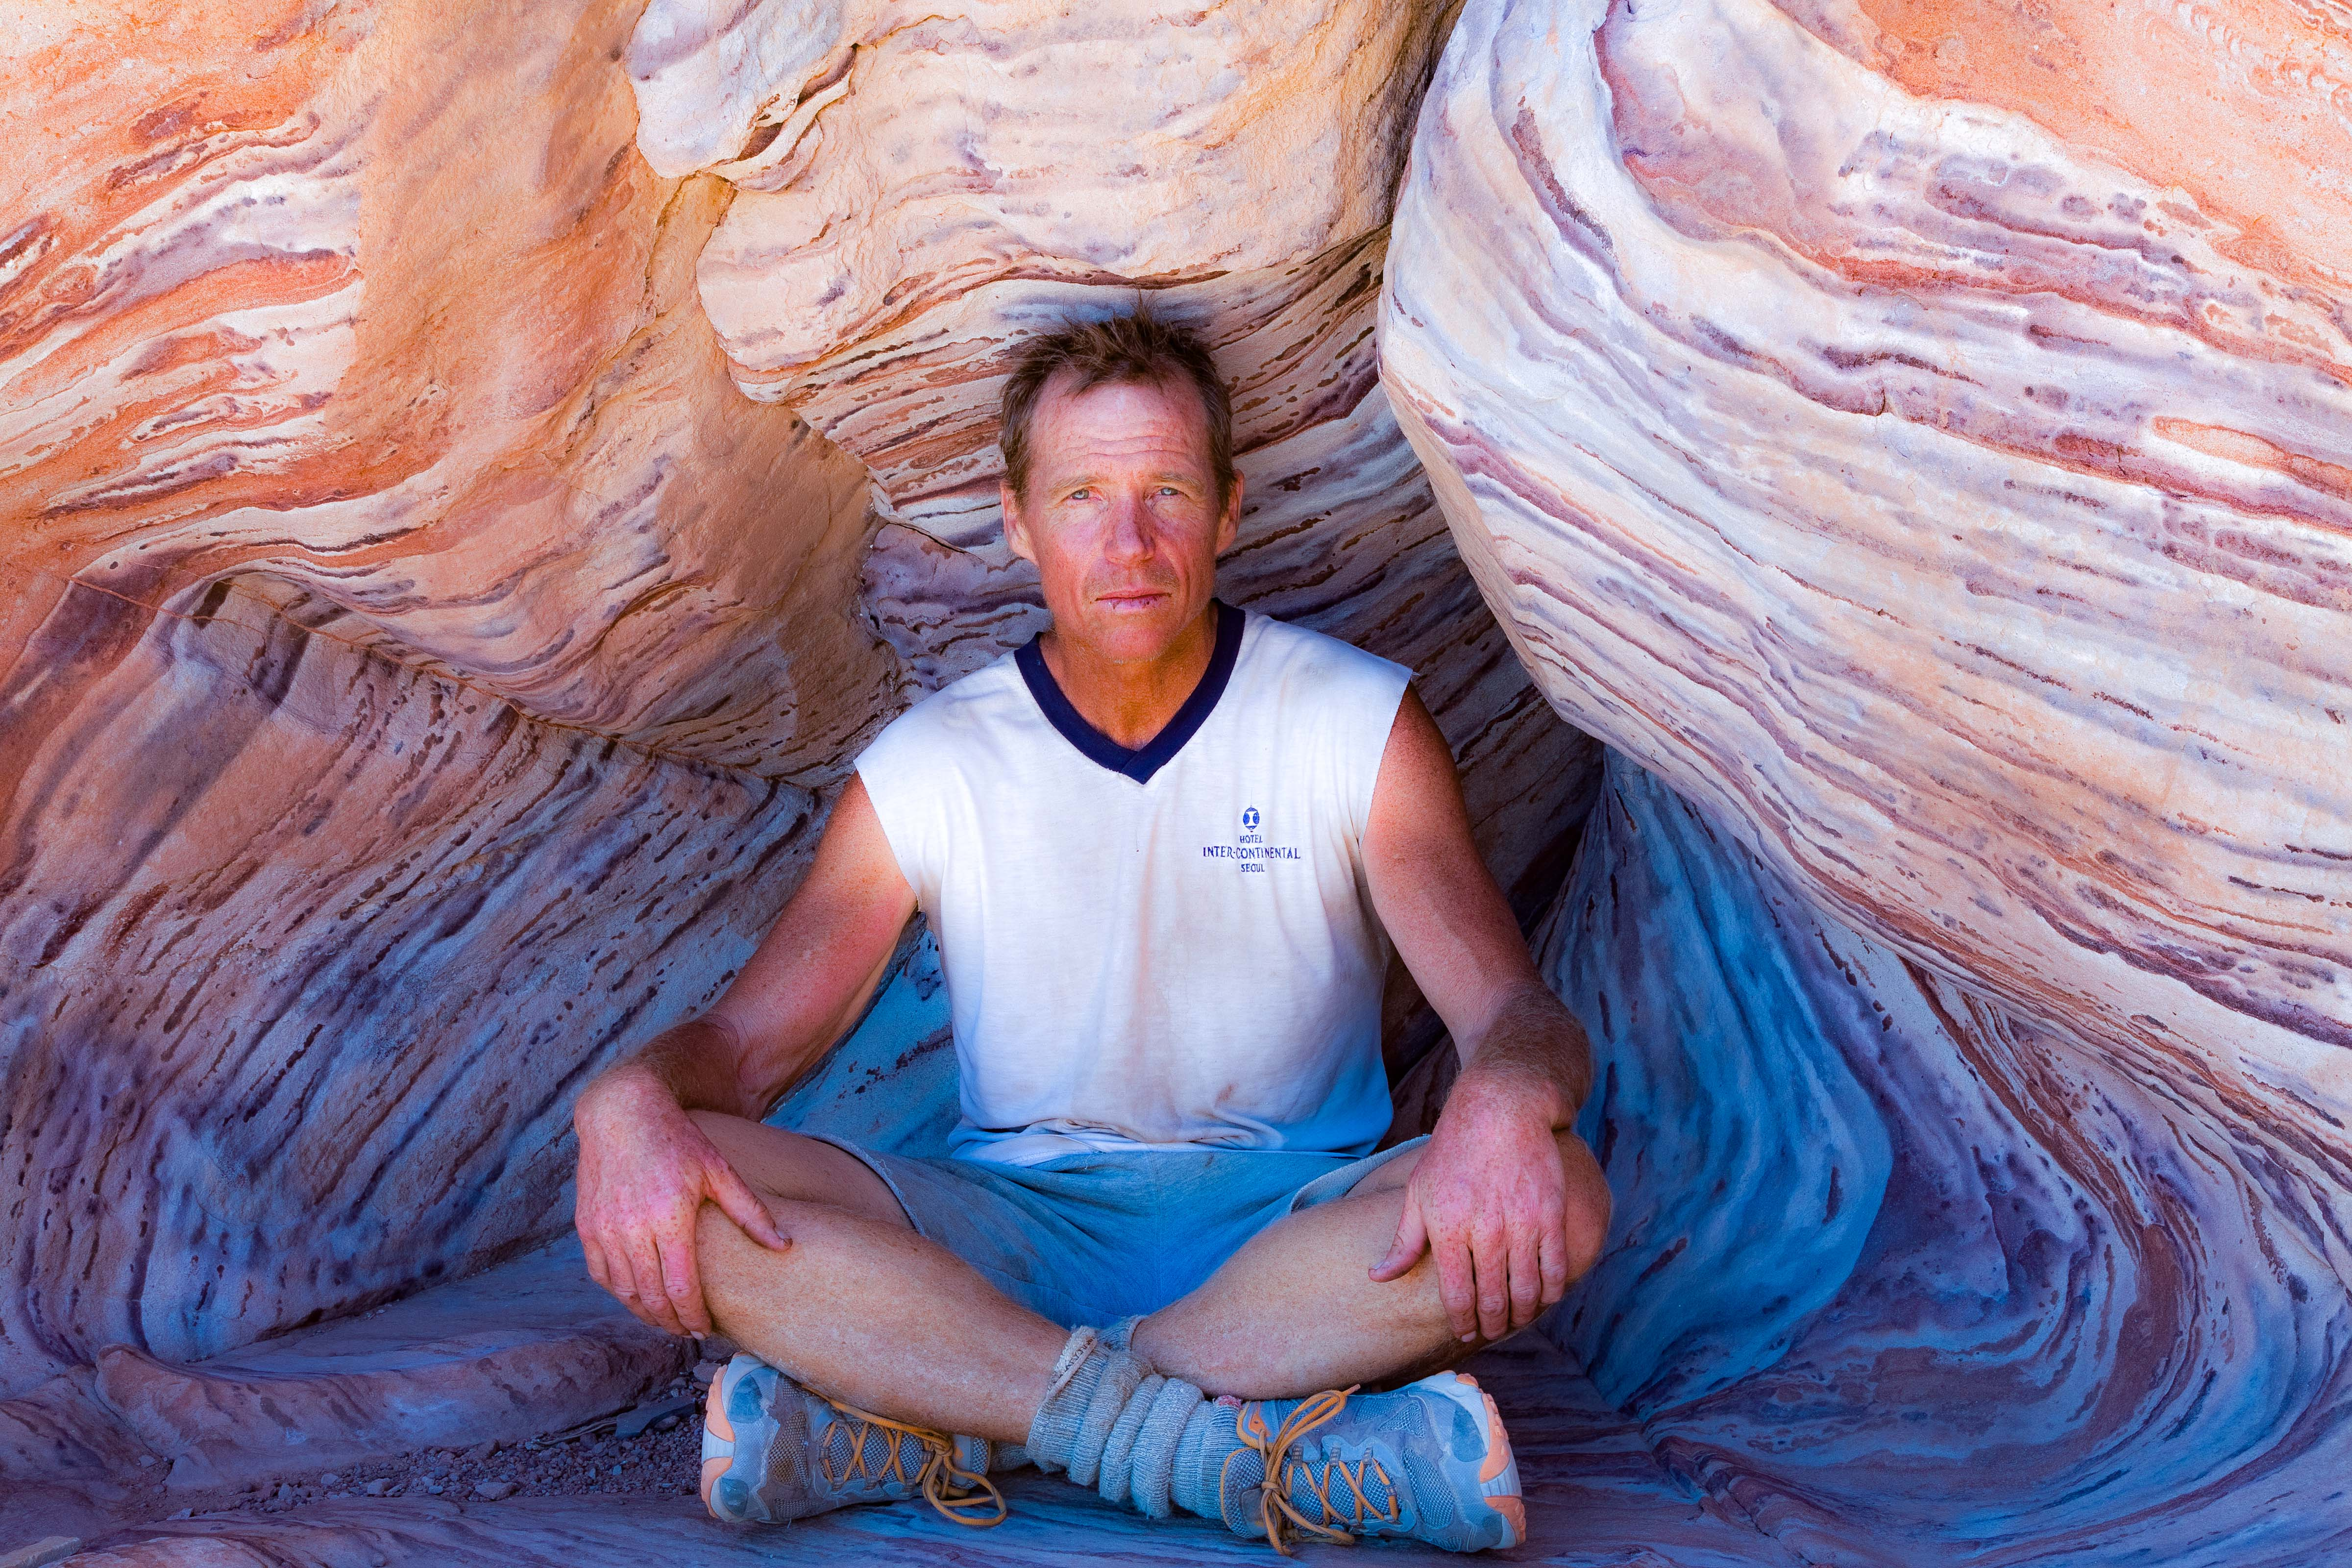 Argentina, Jujuy Prov, Jeff In Colored Rock, 2010, IMG 6347